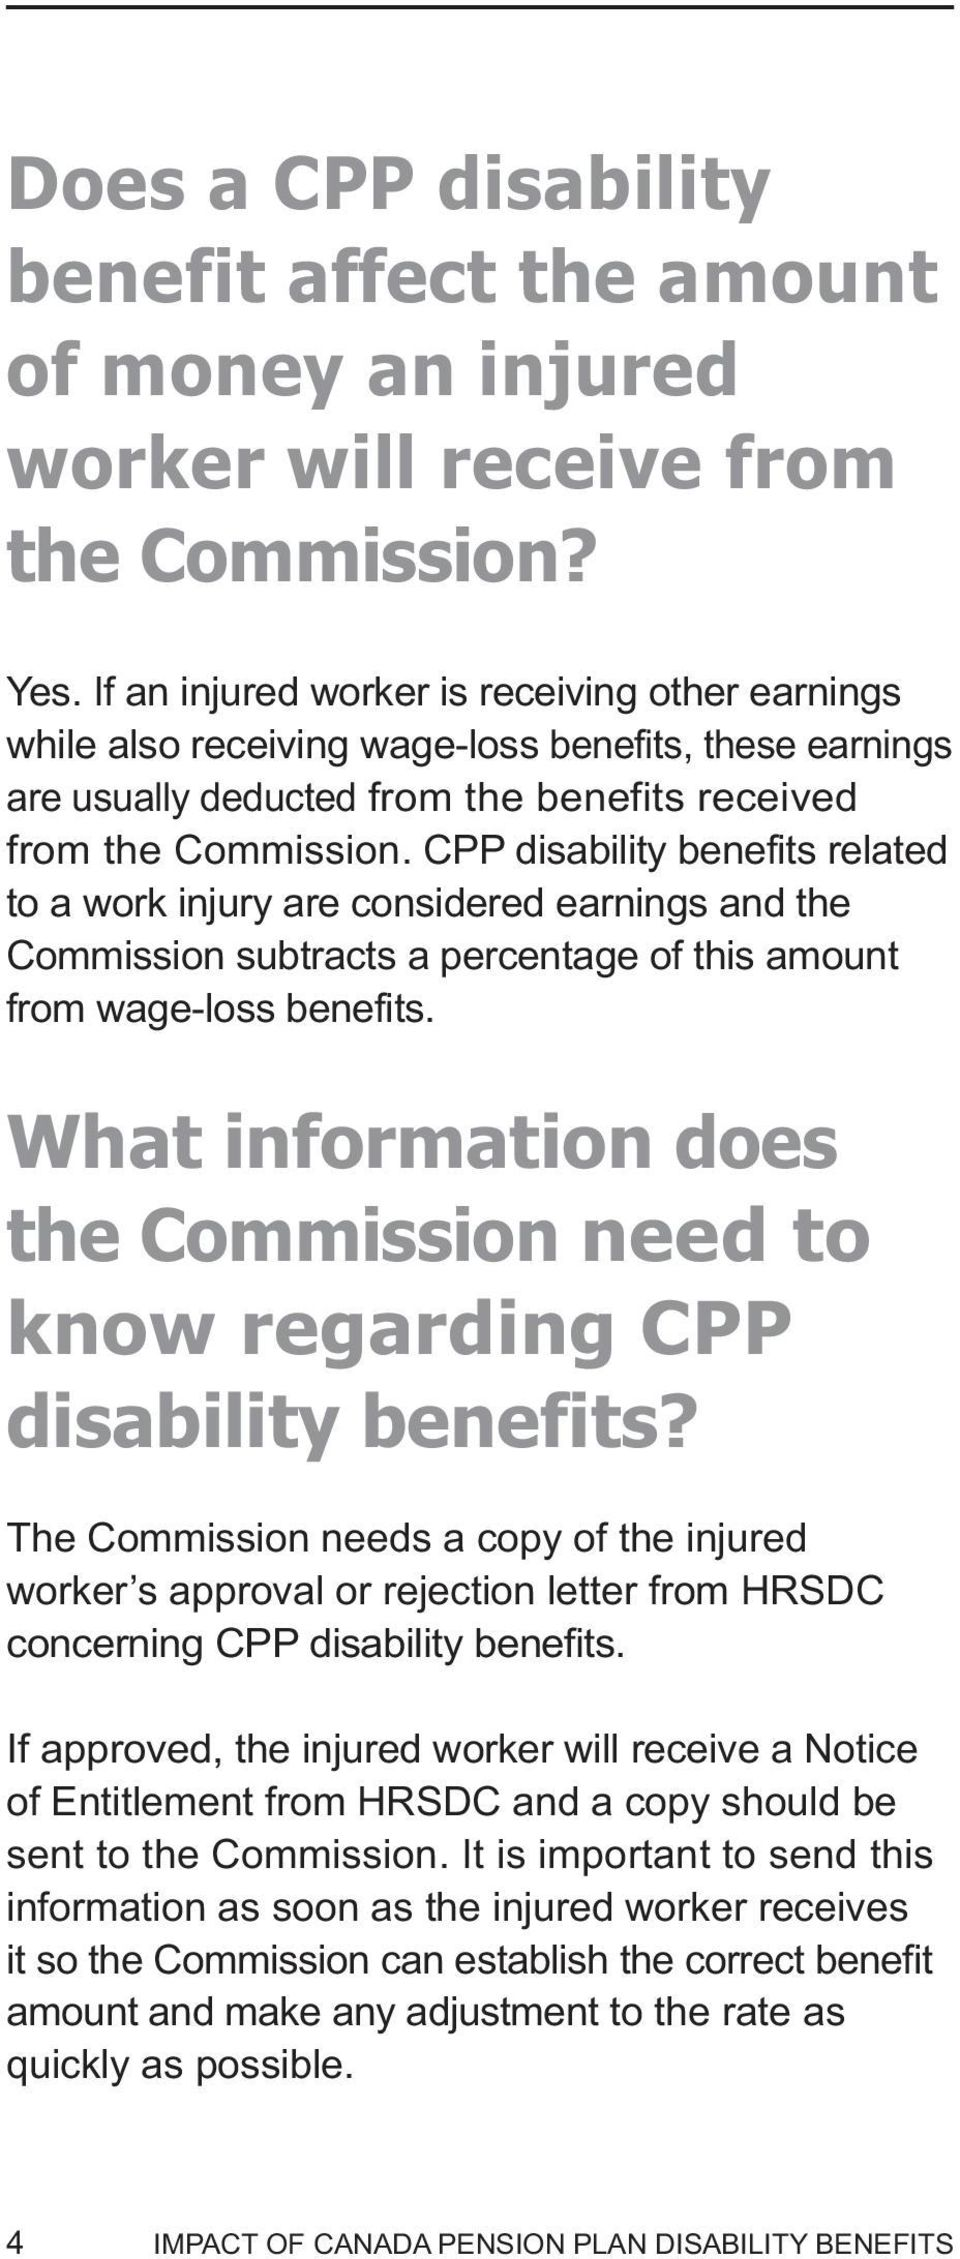 CPP disability benefits related to a work injury are considered earnings and the Commission subtracts a percentage of this amount from wage-loss benefits.